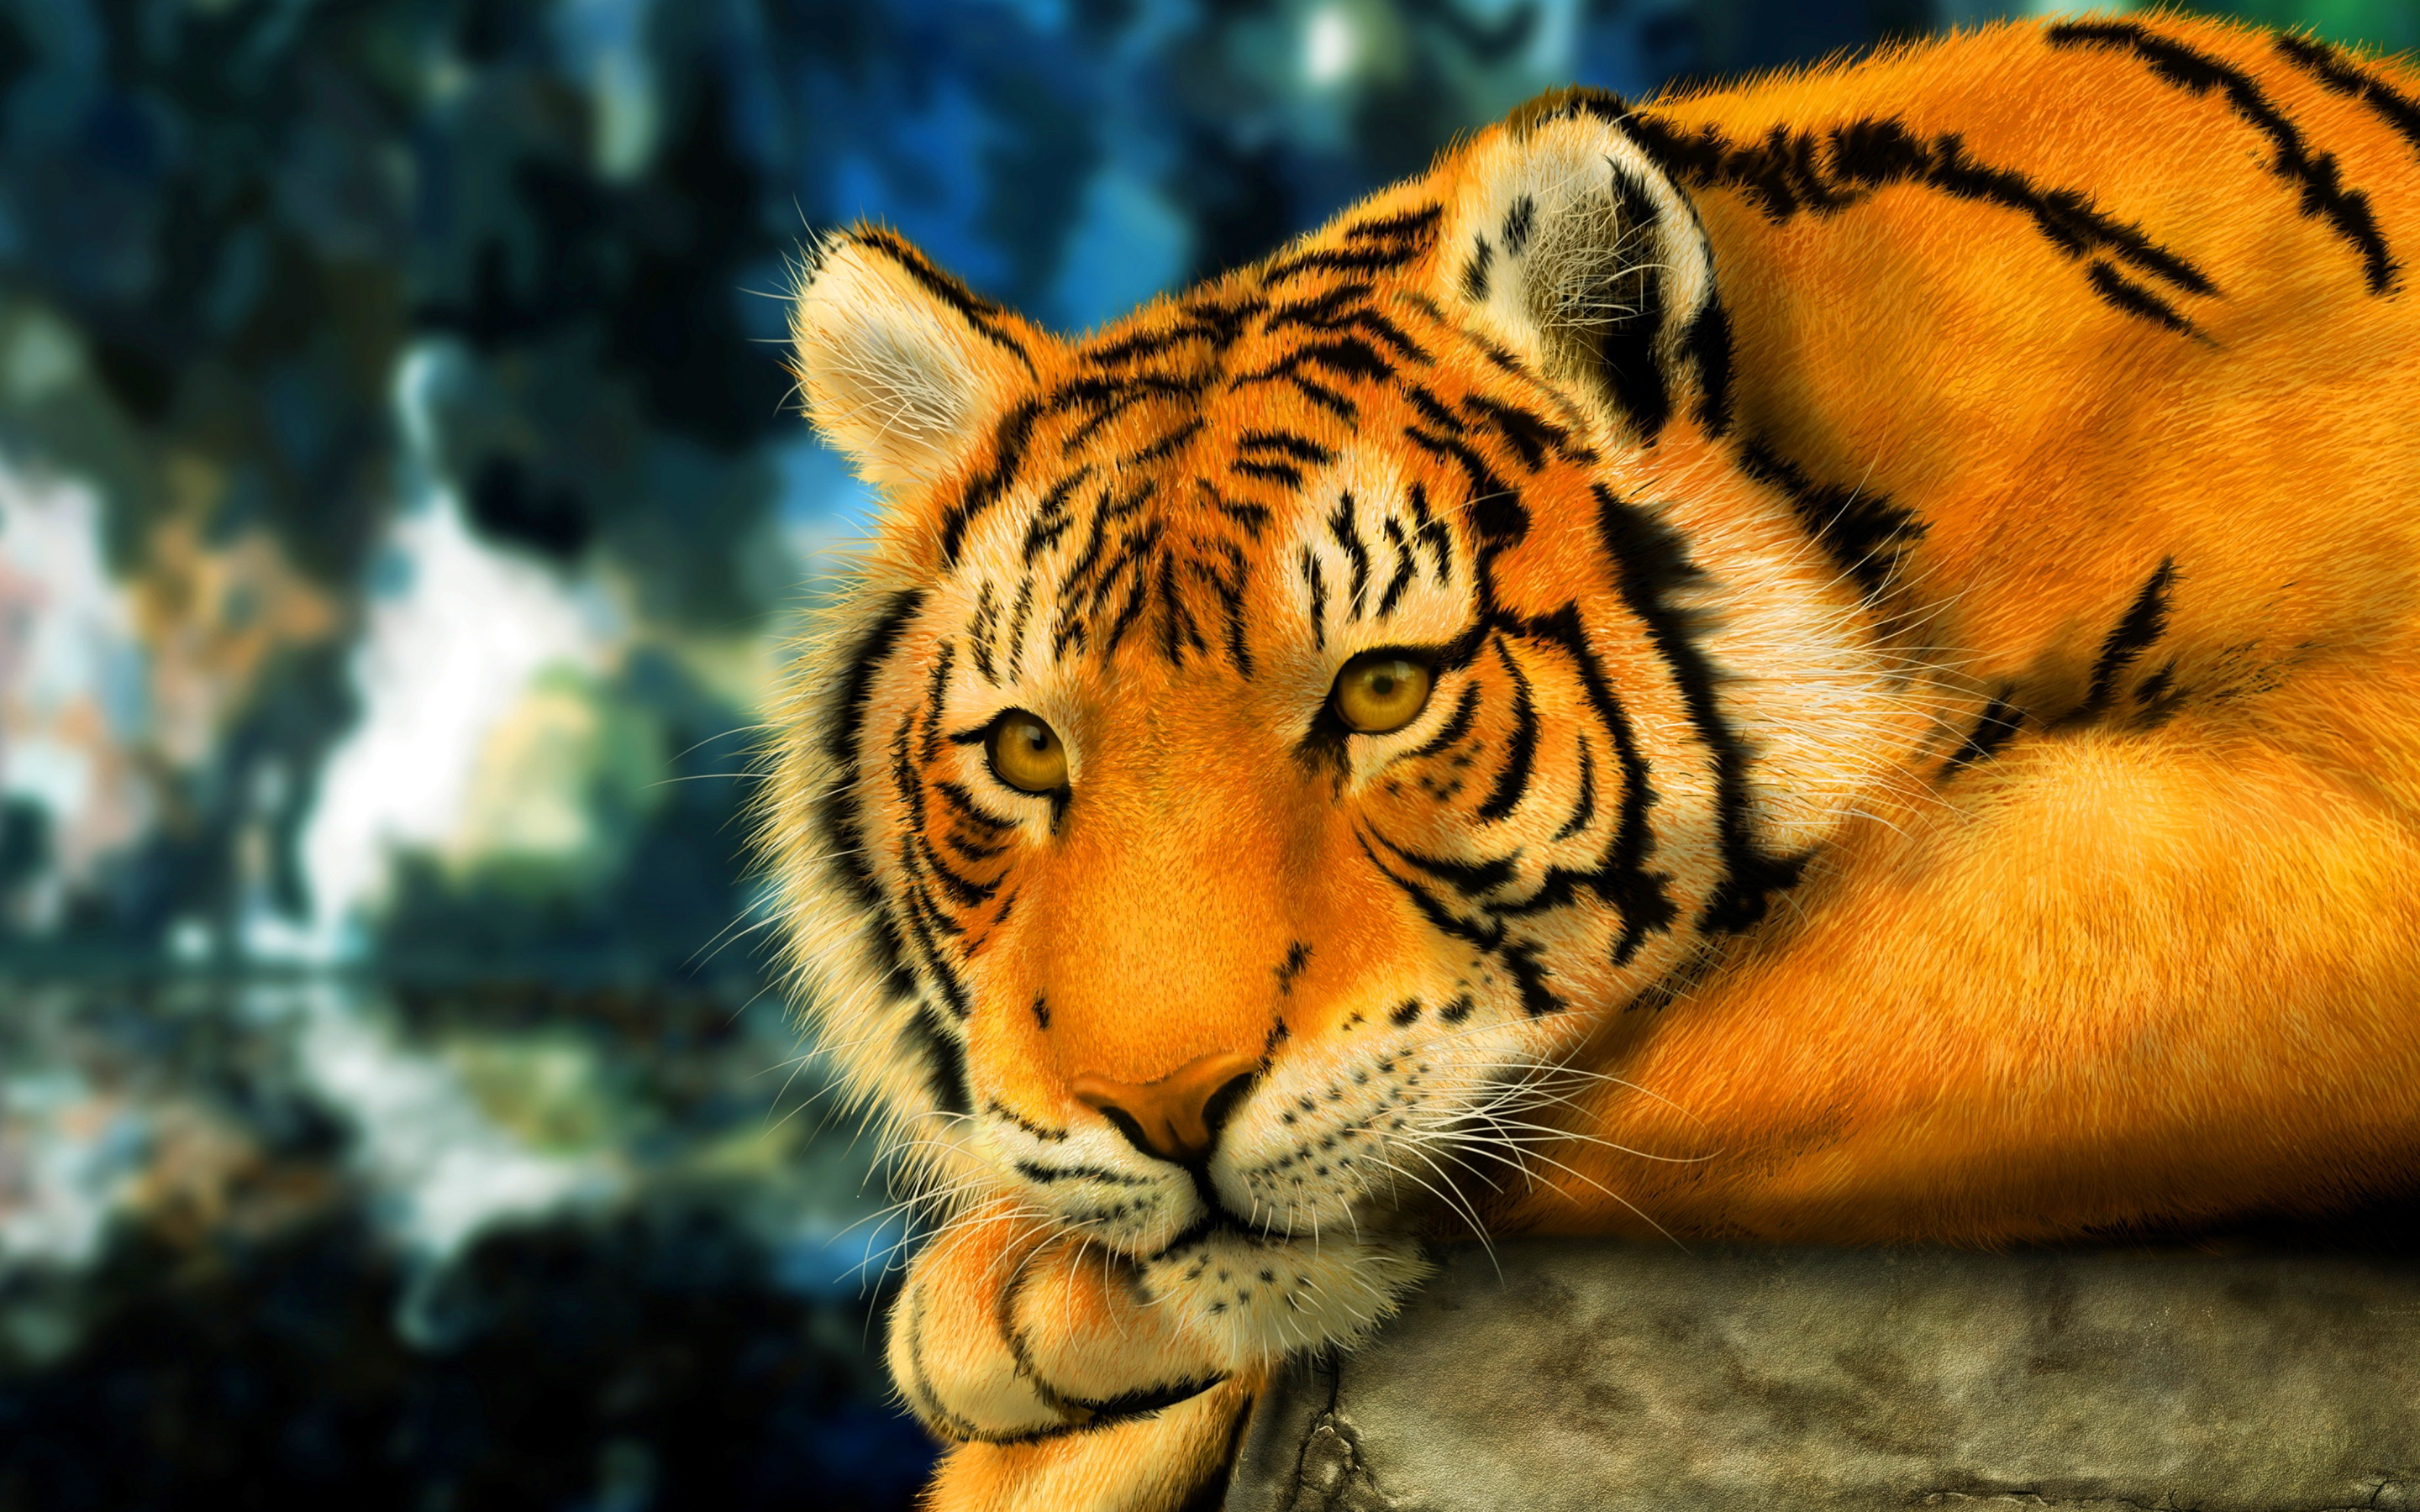 tiger 3d anime - hd desktop wallpapers | 4k hd